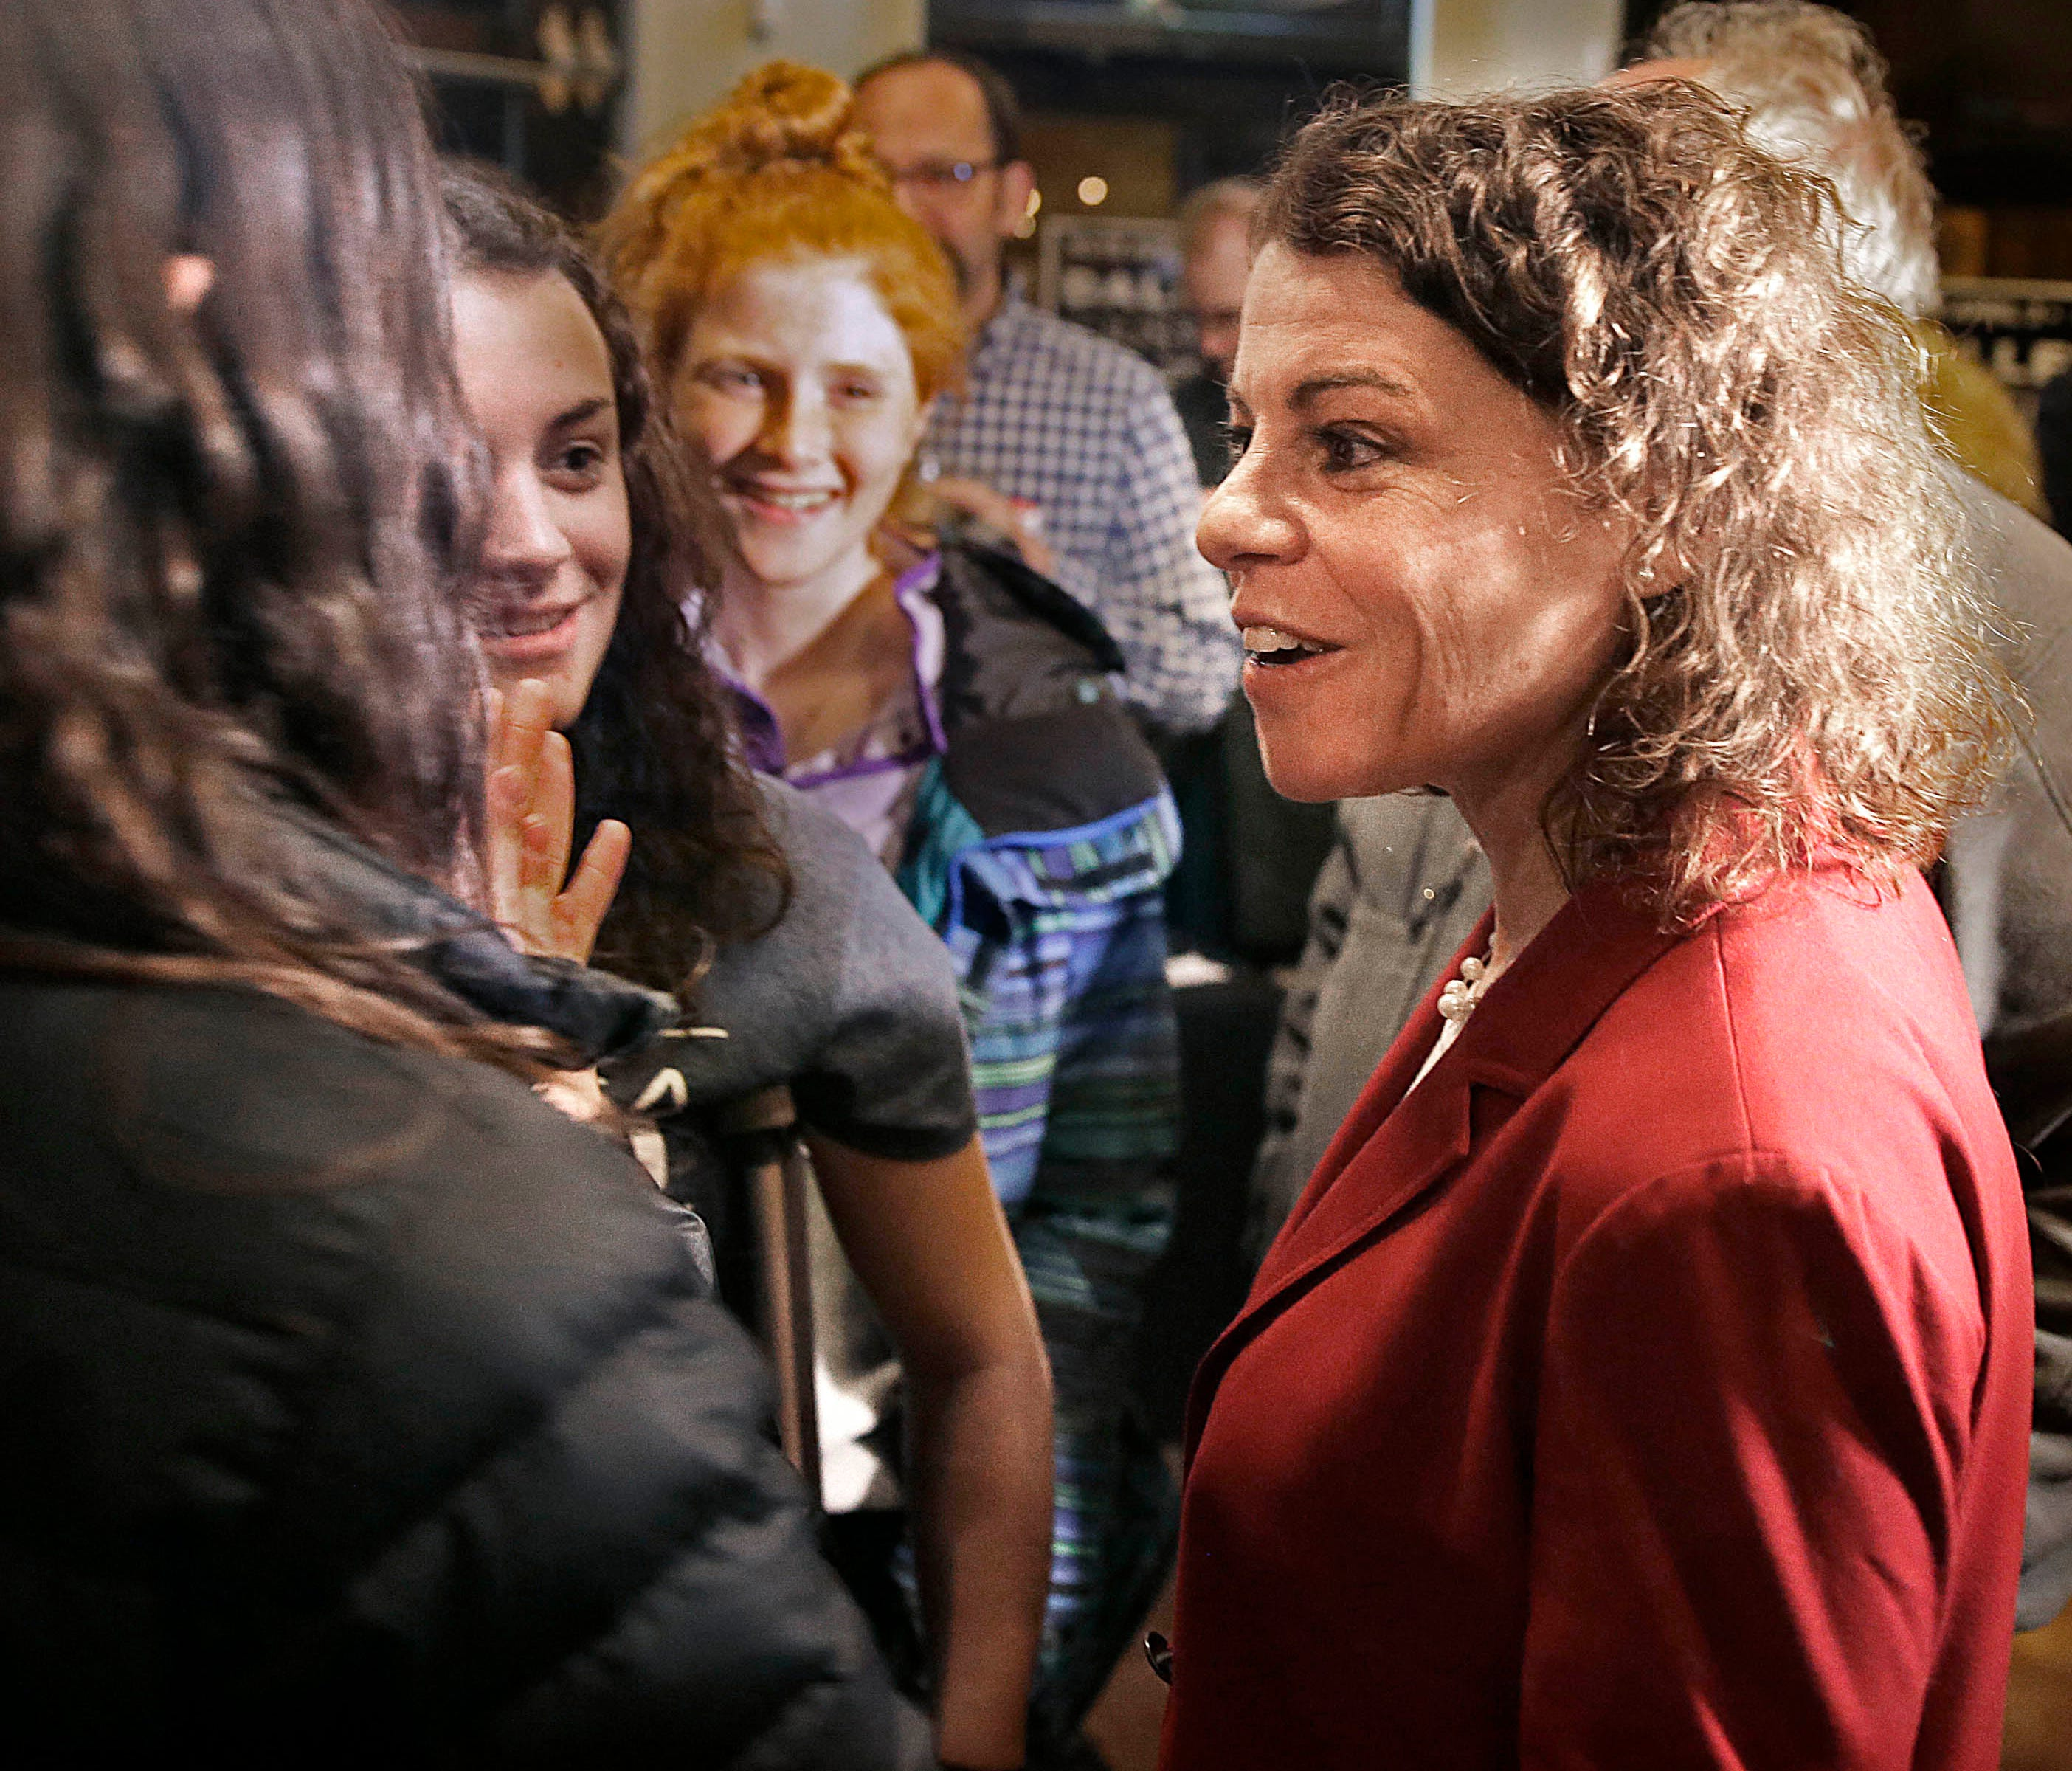 Wisconsin Supreme Court candidate Judge Rebecca Dallet greets supporters as they watch returns on election night at Good City Brewing in Milwaukee. Dallet is challenging  Sauk County Judge Michael Screnock for a spot on the Wisconsin Supreme Court. T